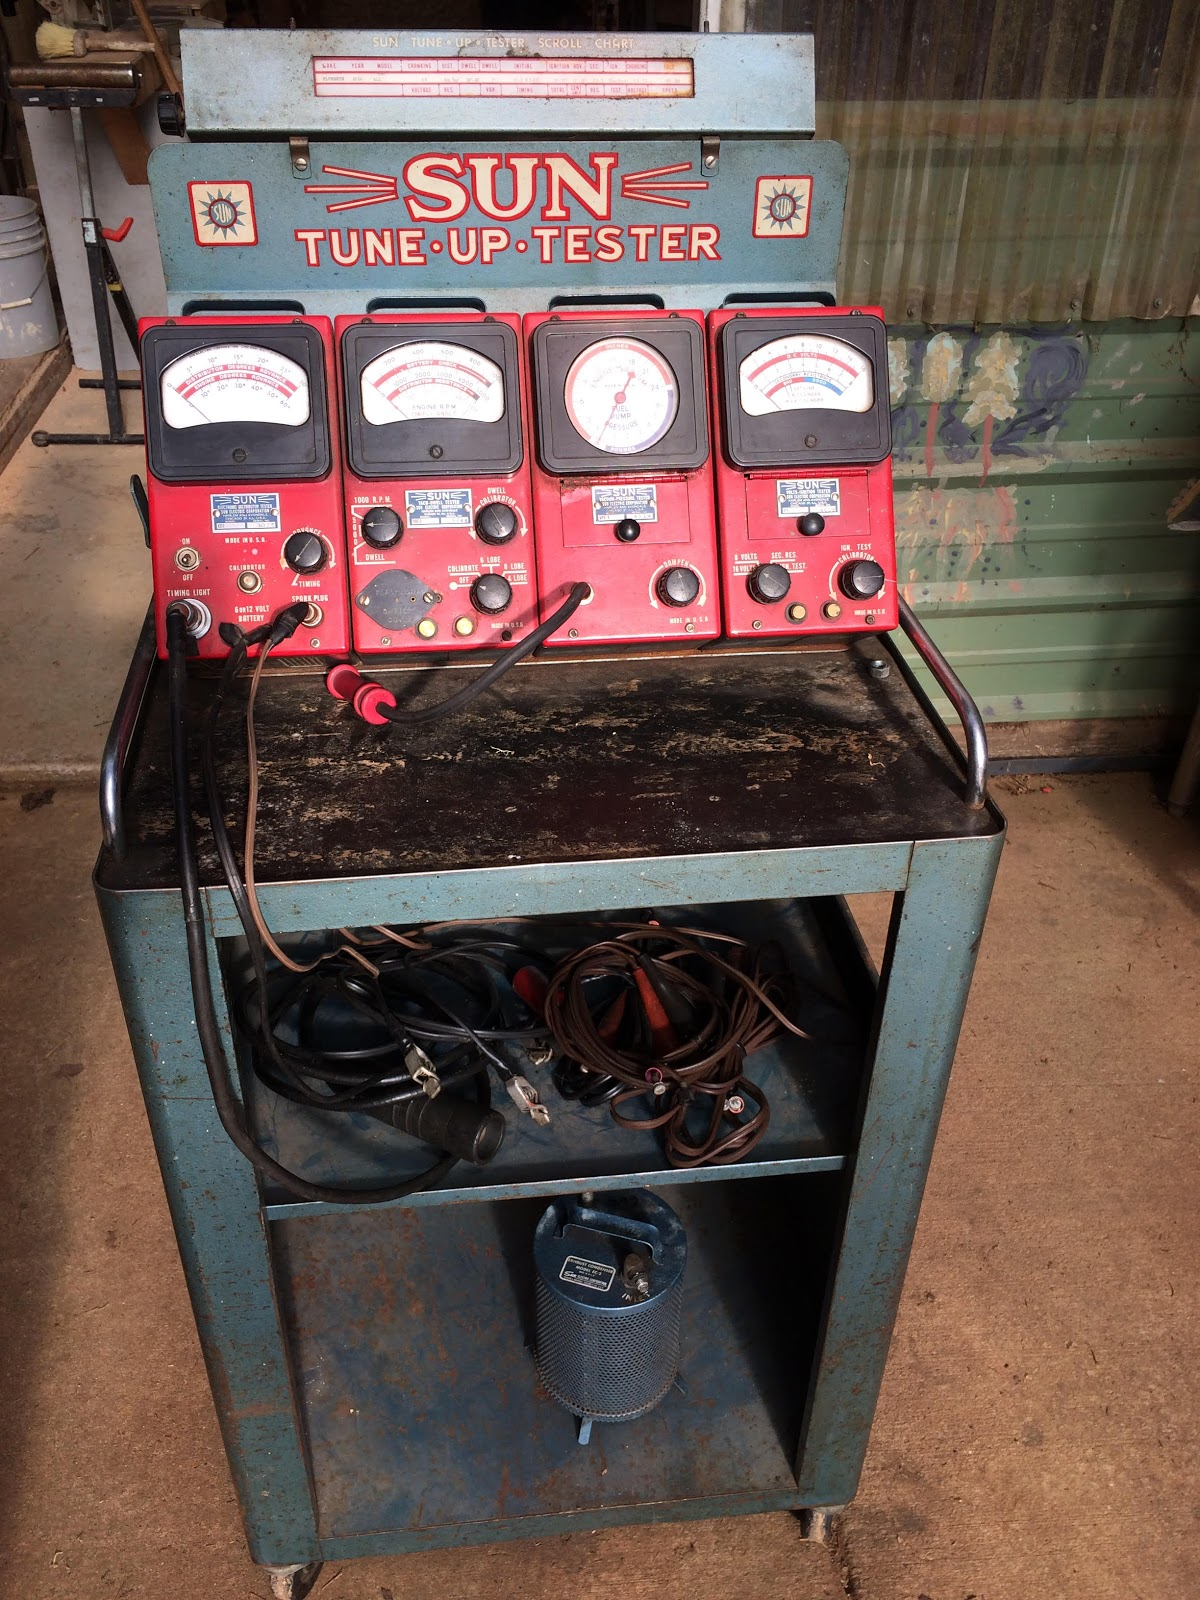 Sun Test Equiment Tune Tach Wiring Diagram This Is A Up Tester Tut Circa 1952 It Comprised Of 4 Separate Meters Dwell Tdt 2 Volts Ignition Vit